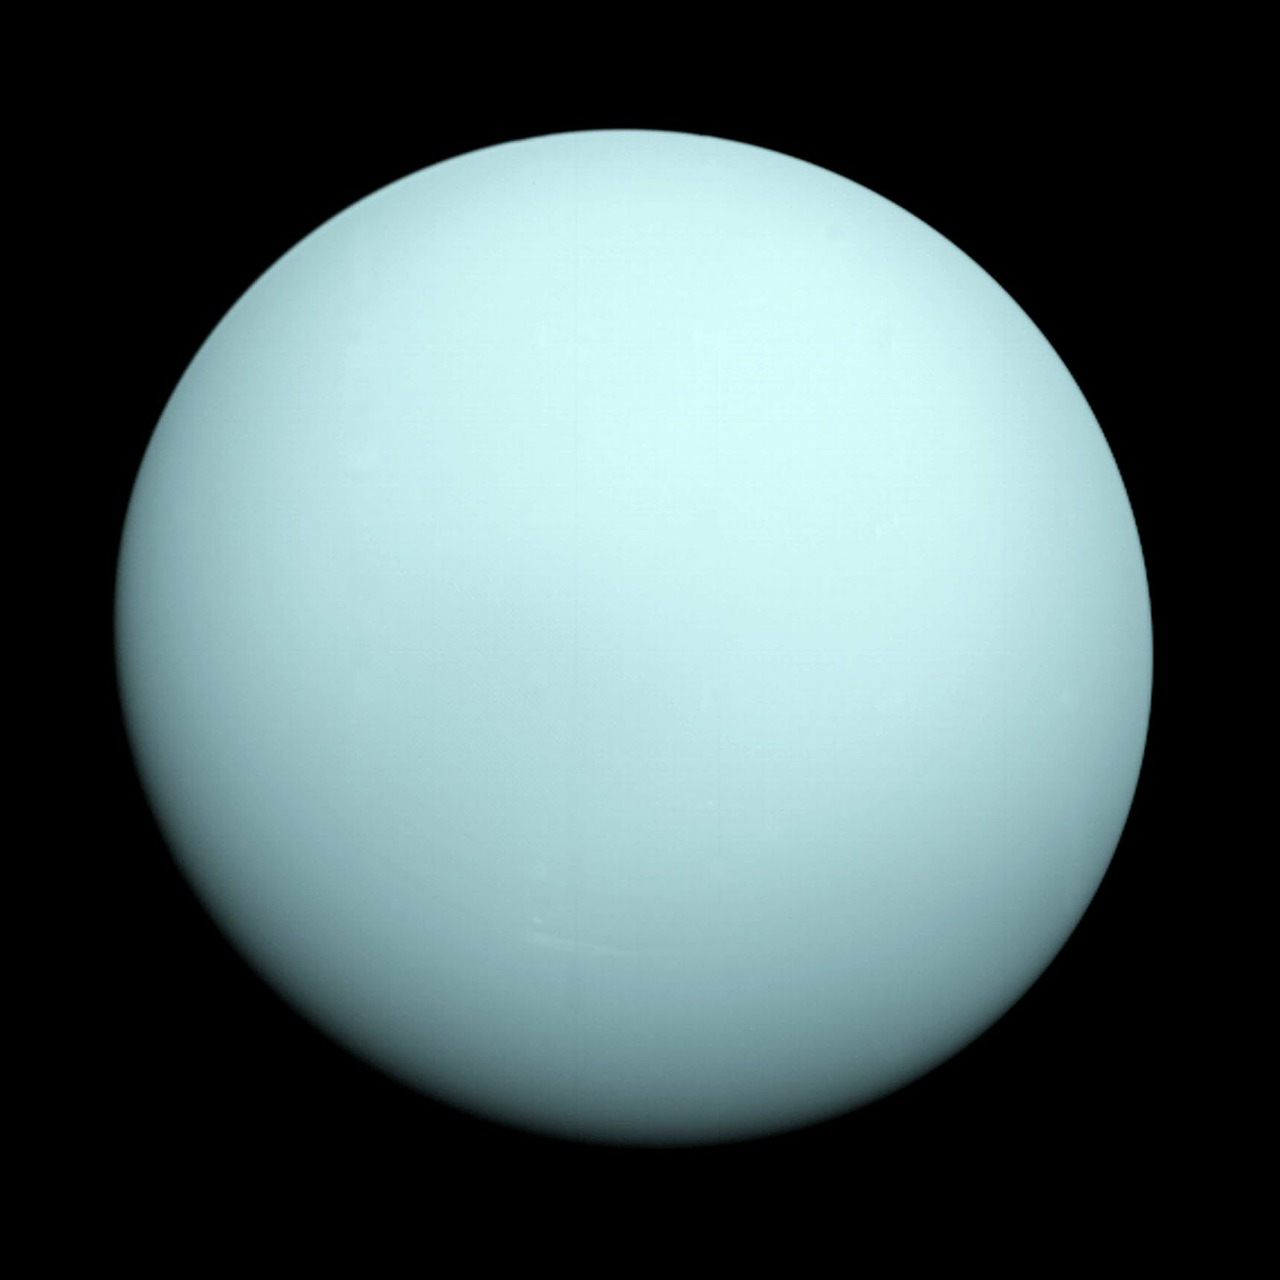 Uranus is a very bland-looking planet, but its clouds probably don't smell that great.